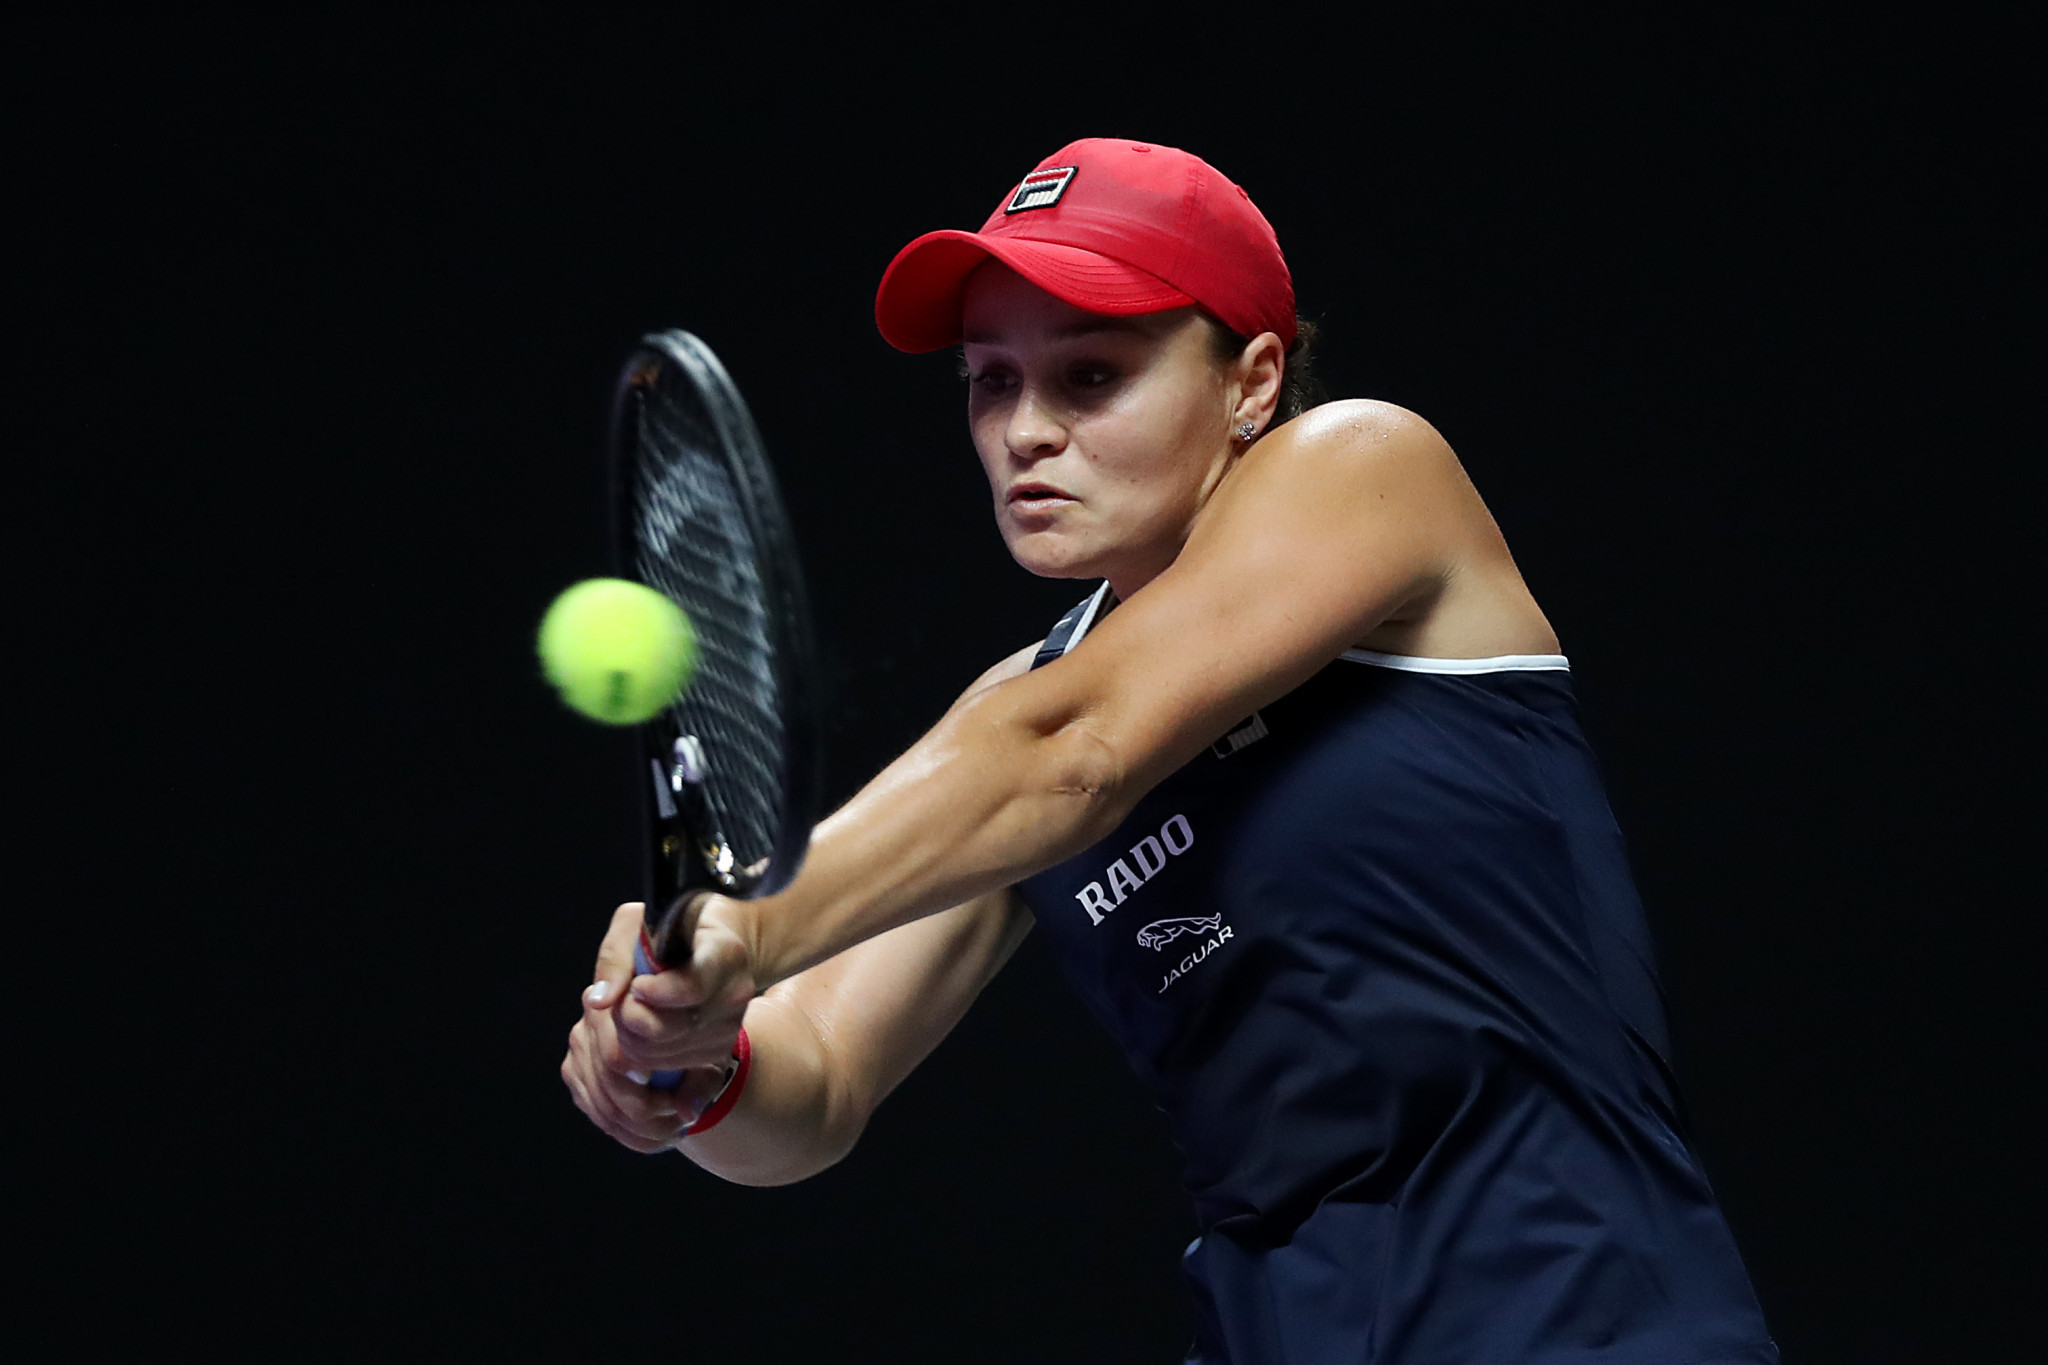 Barty sees off Kvitová to reach last four at WTA Finals